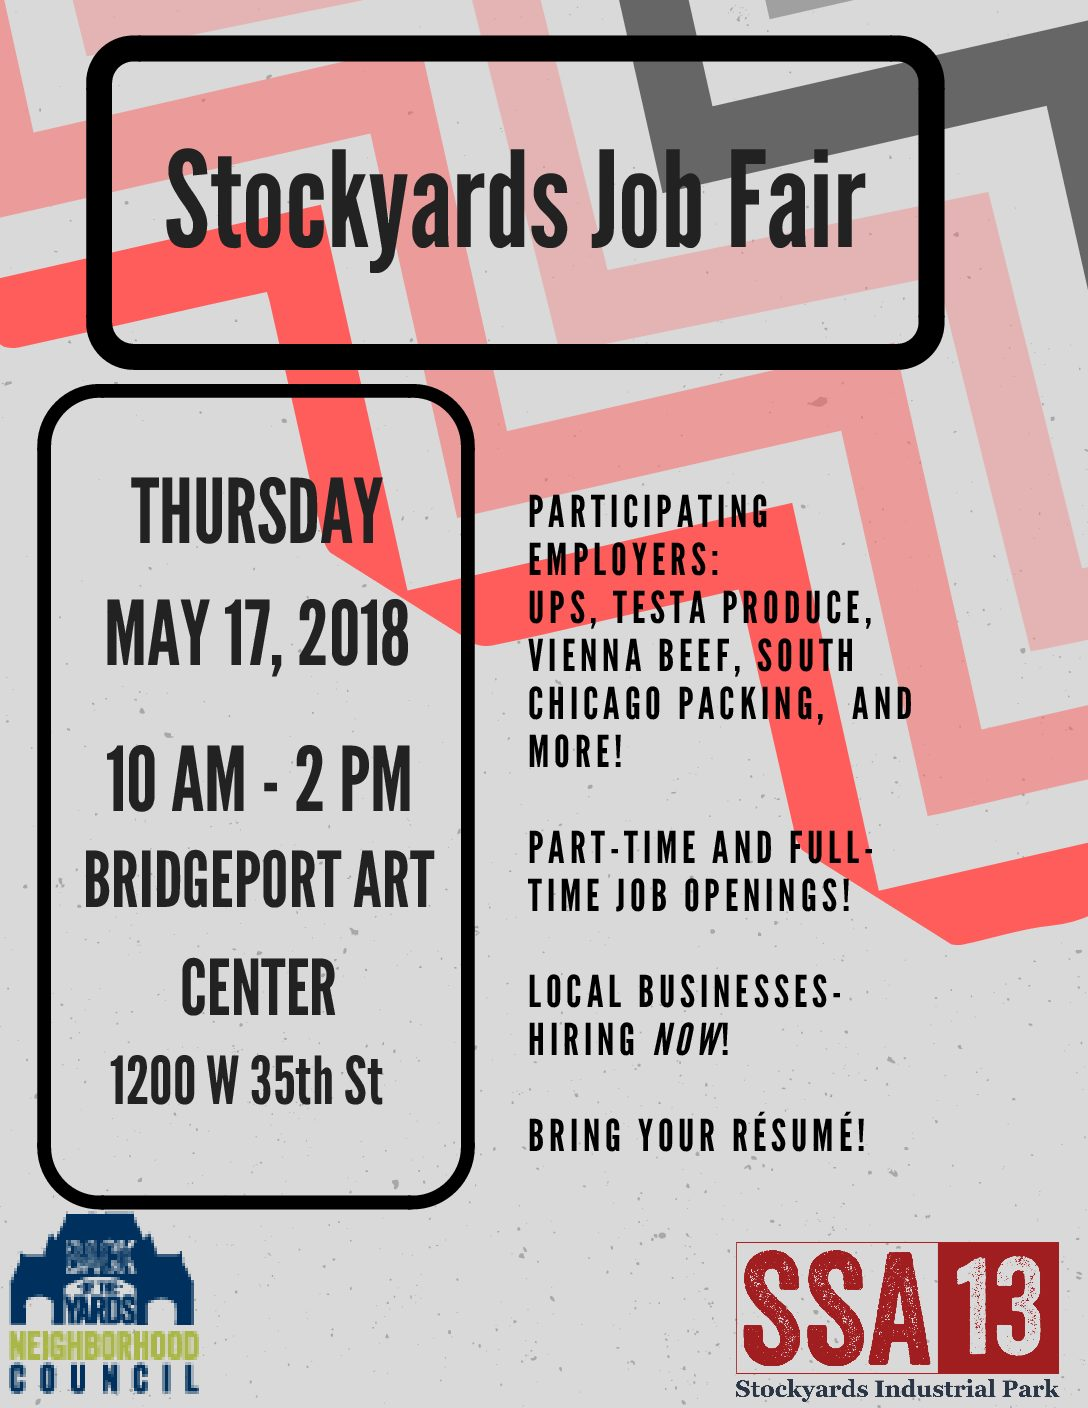 Stockyards Job Fair (SSA #13)